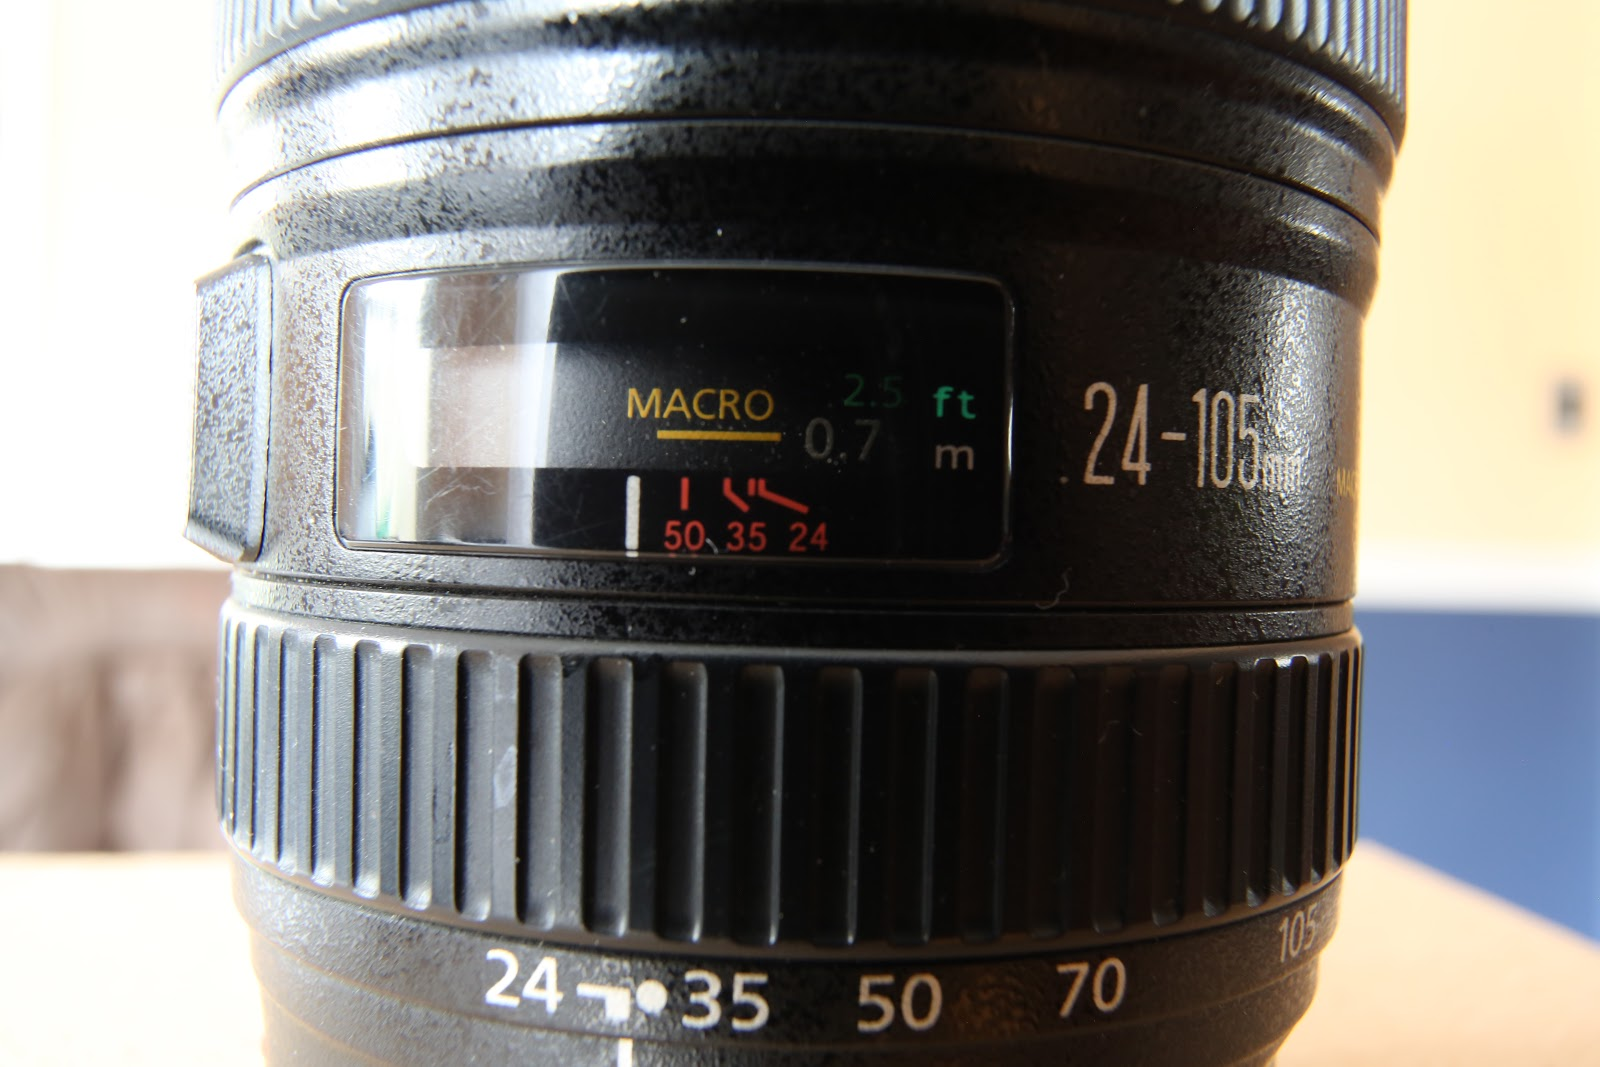 …while a 25mm macro lens with the same reproduction ratio has a closer working distance and produces a rounded look.